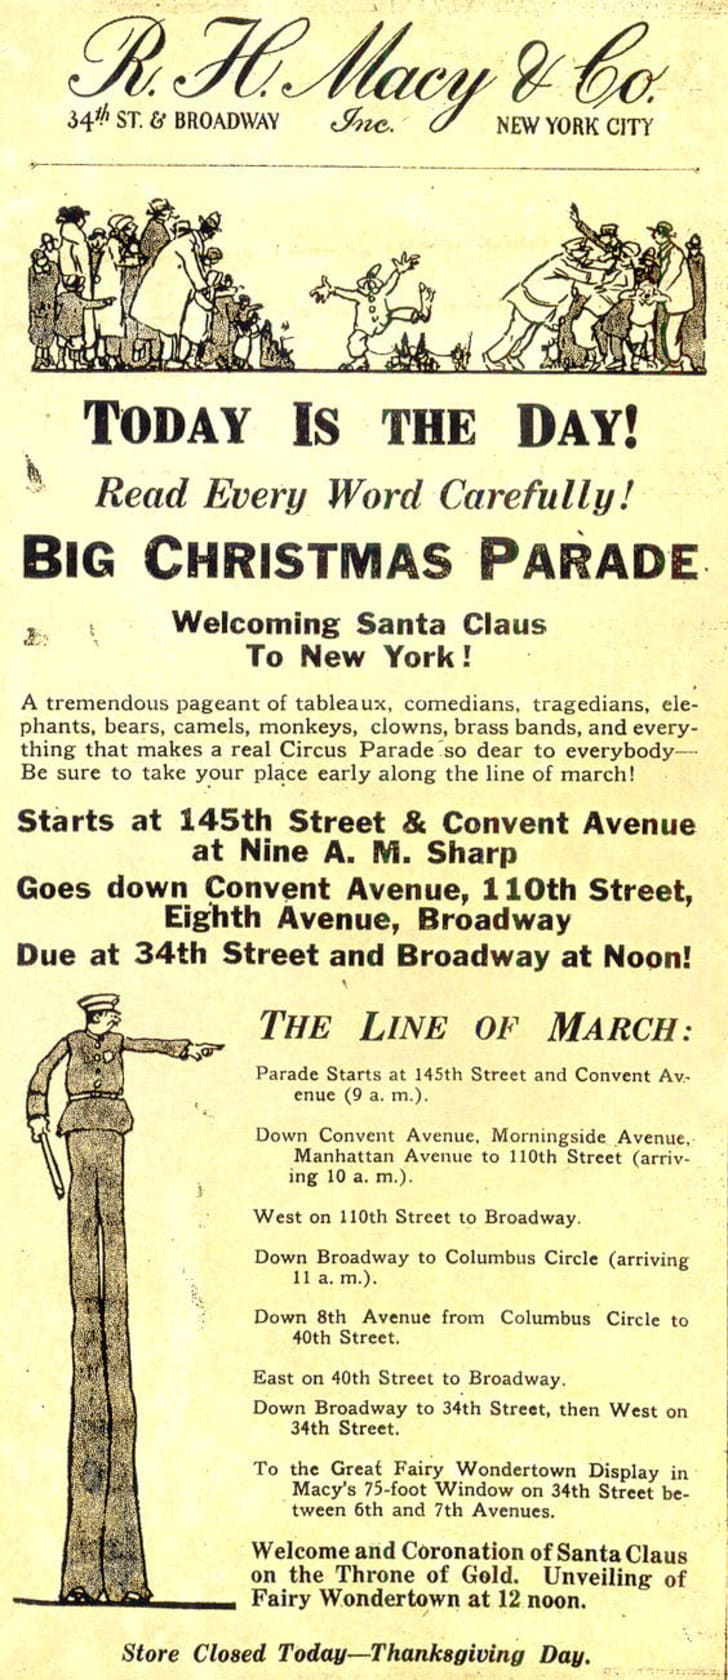 Advertising from an early Macy's parade